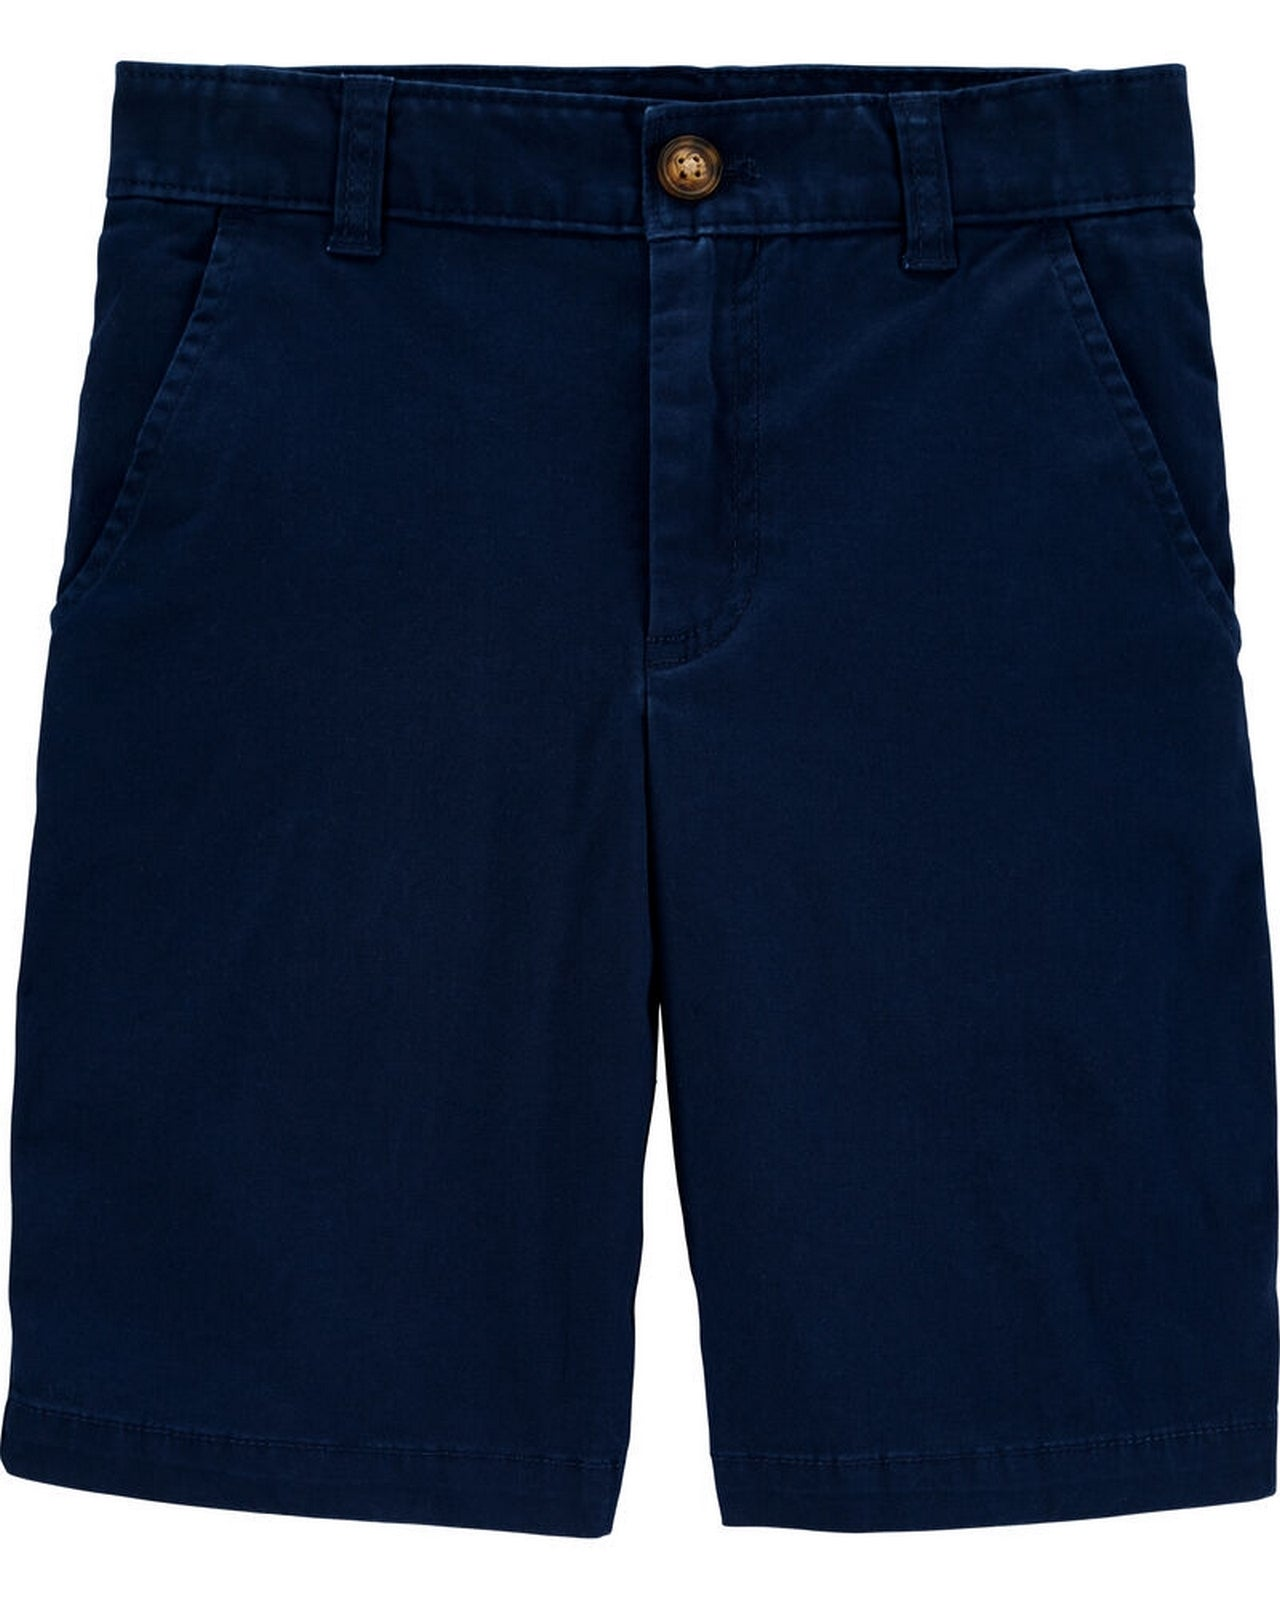 Carter's Flat-Front Shorts 3H484010